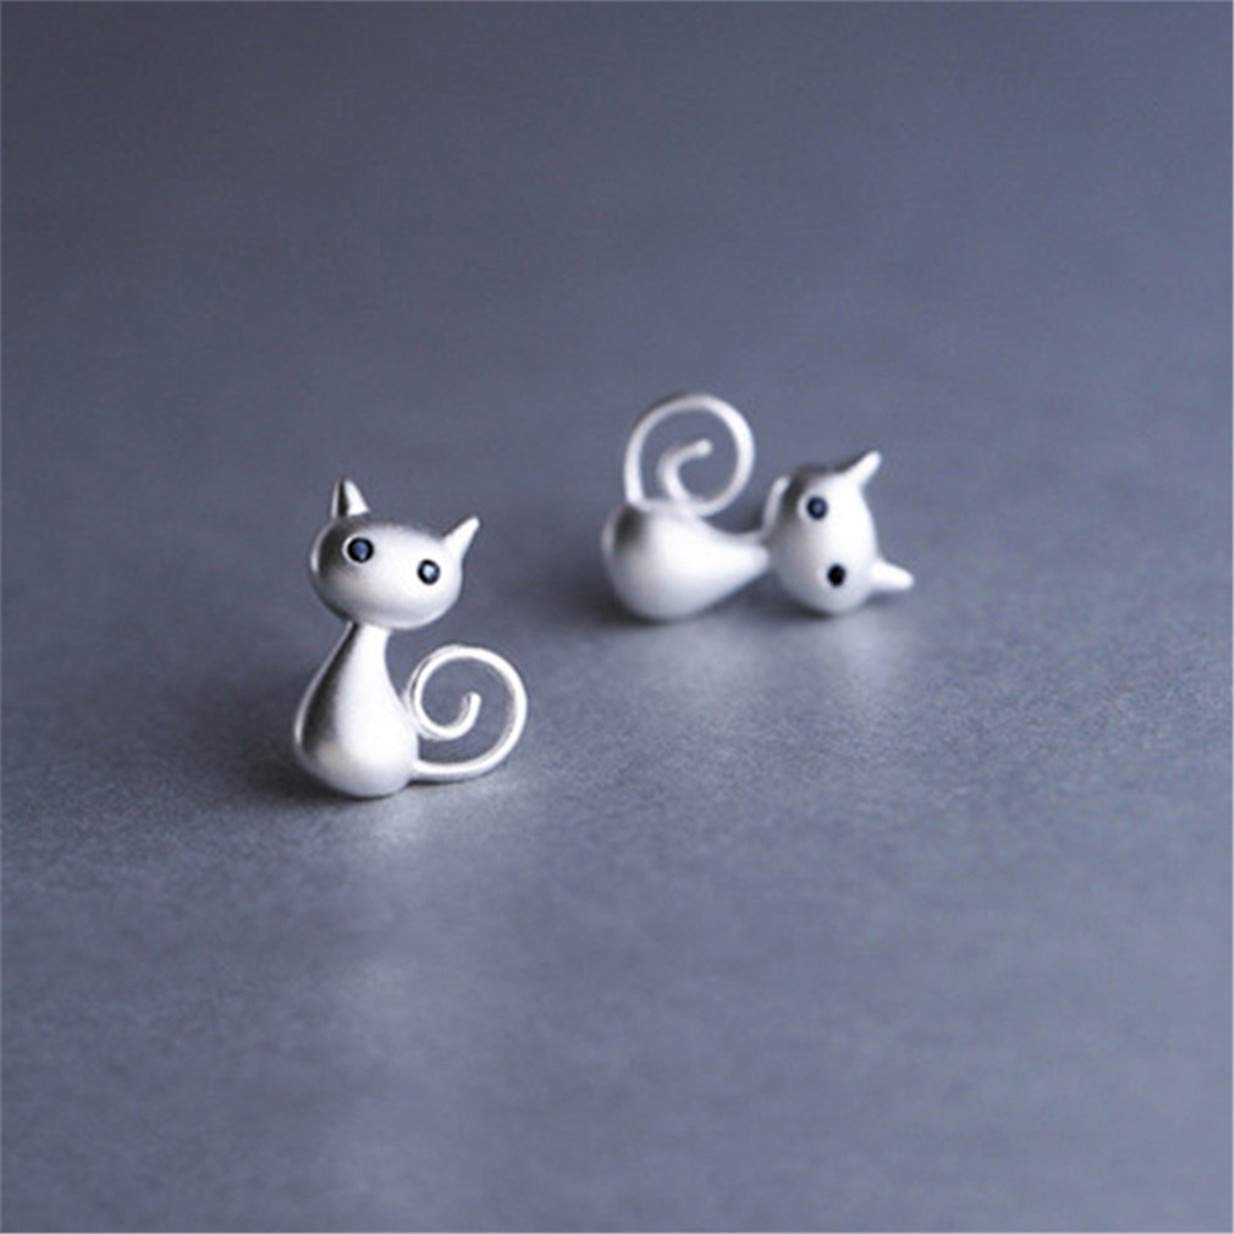 LALANG Simple Silver Cat Shape Inlaid Rhinestone Stud Earrings Gift for Girls